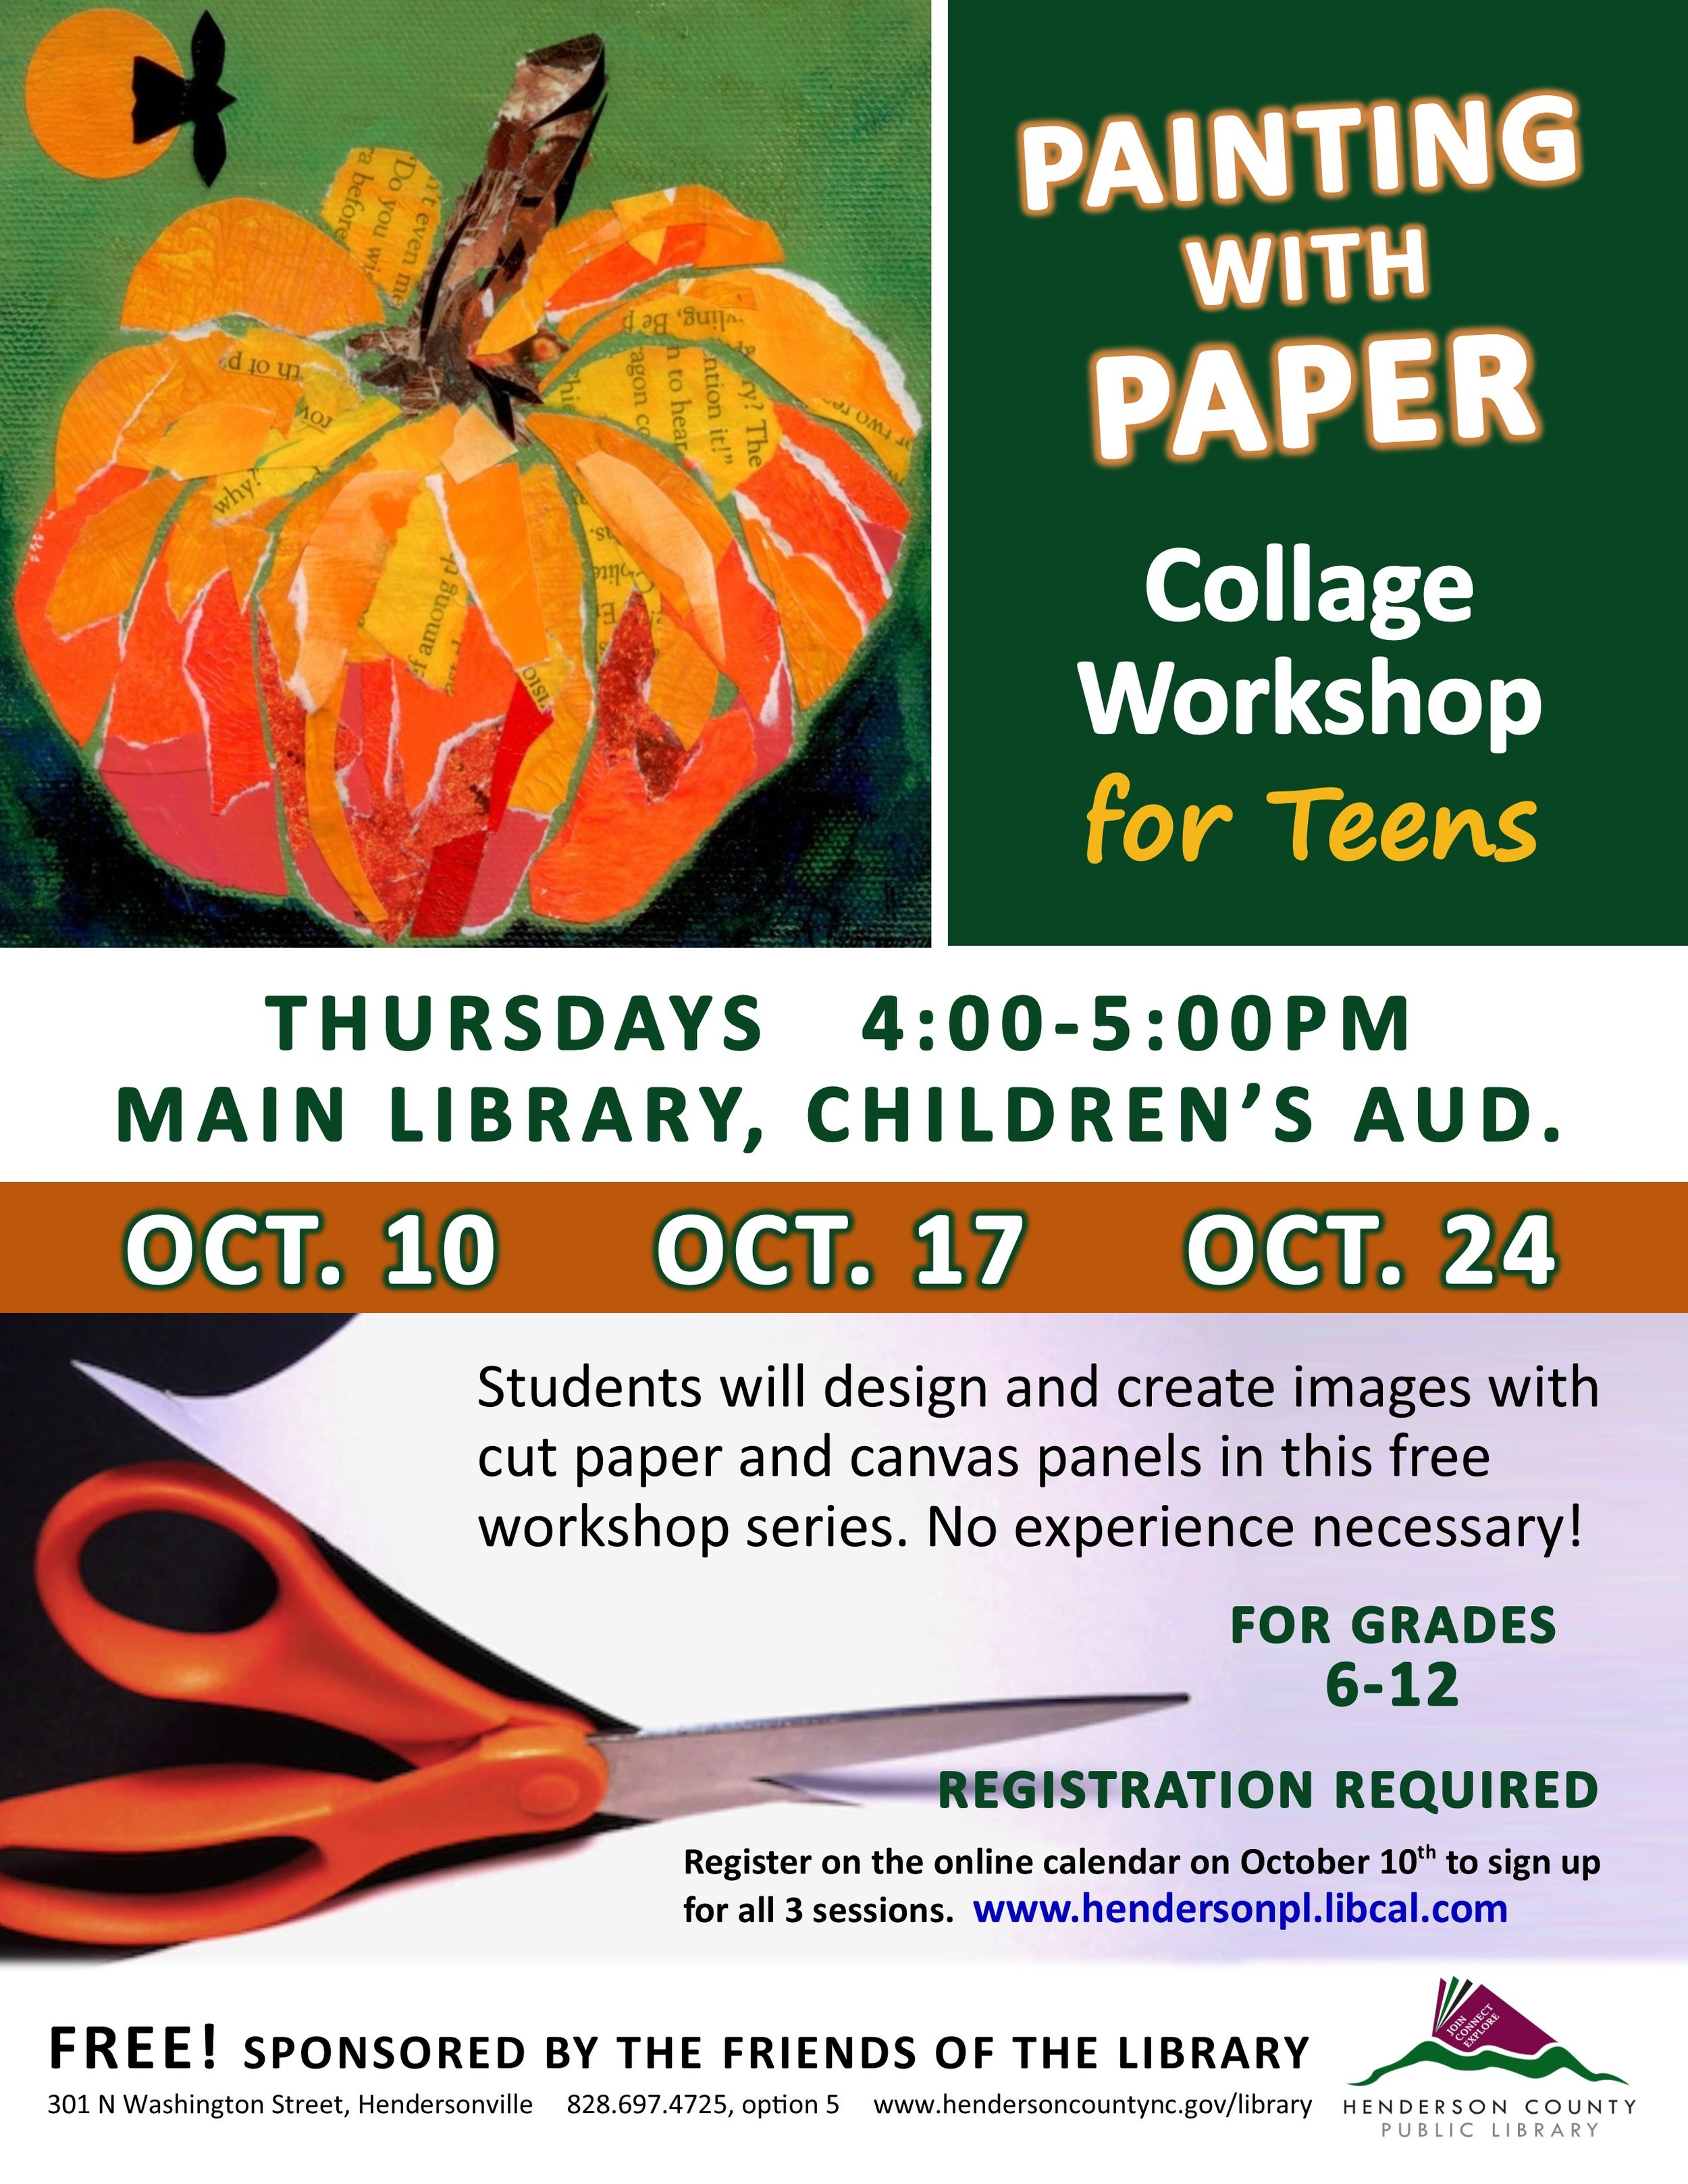 Painting with Paper Collage Workshop for Teens.jpg